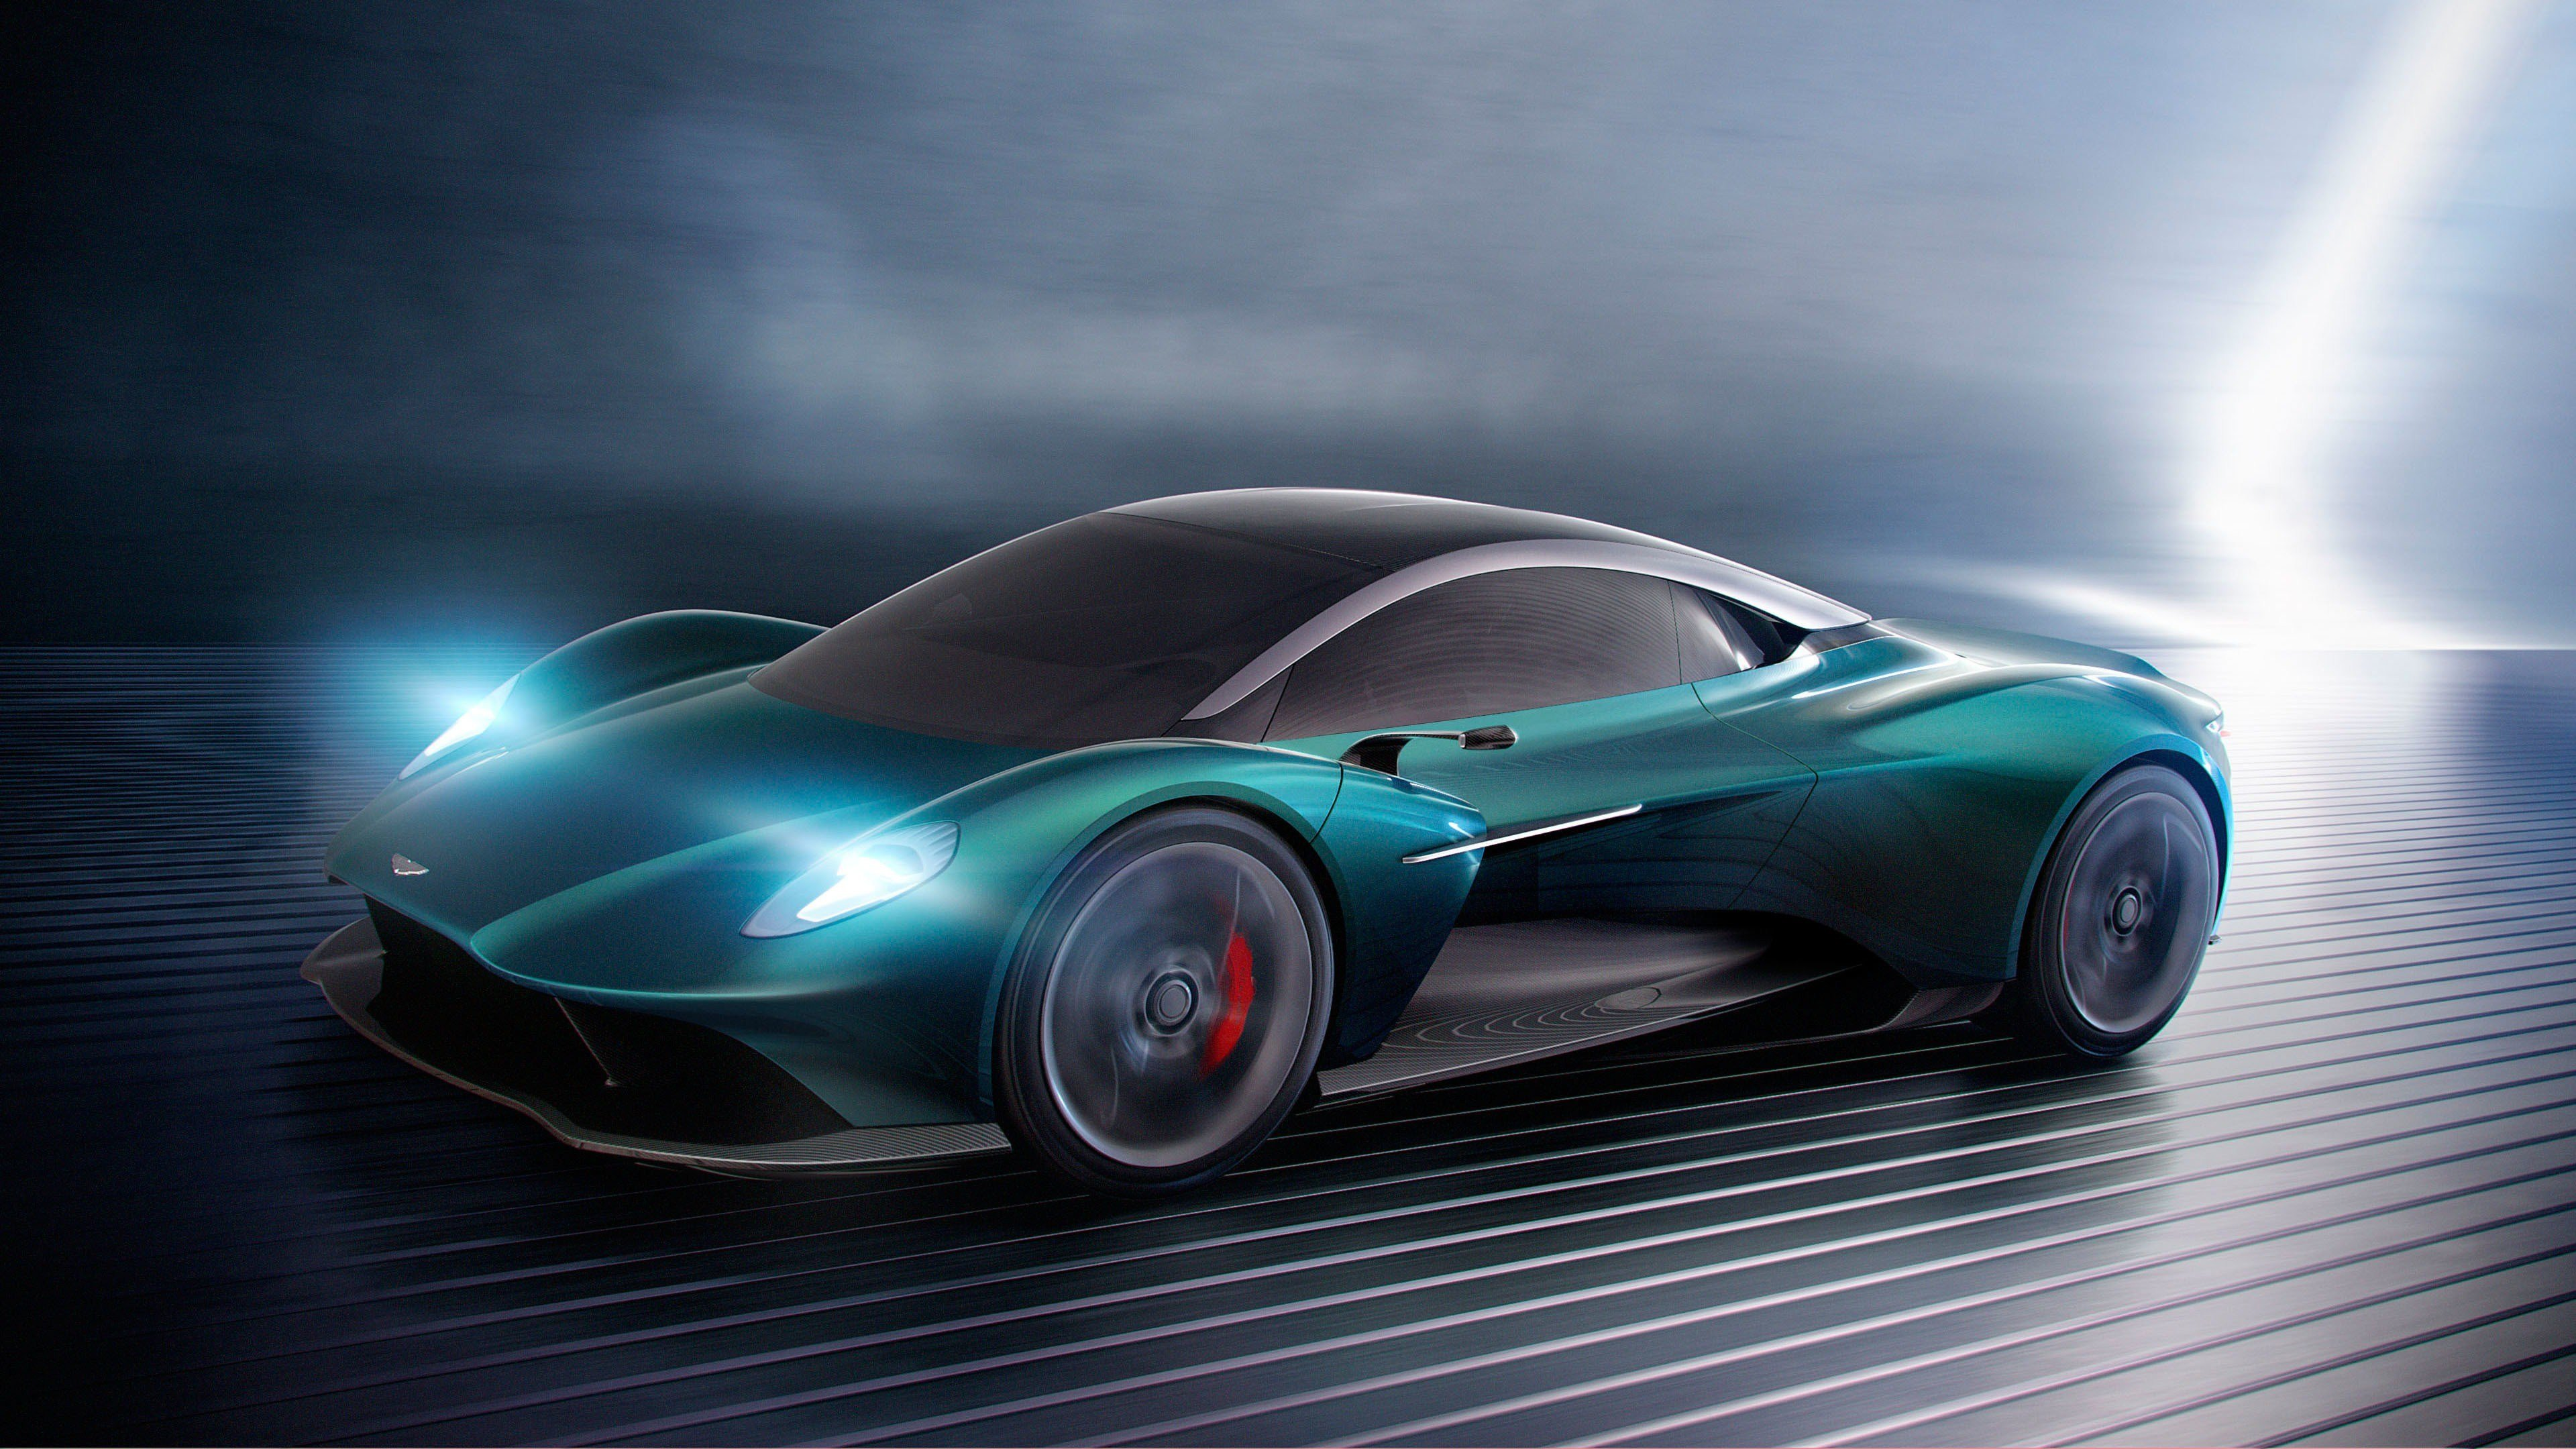 Latest 4K Photo Of 2019 Aston Martin Vanquish Vision Car Hd Free Download